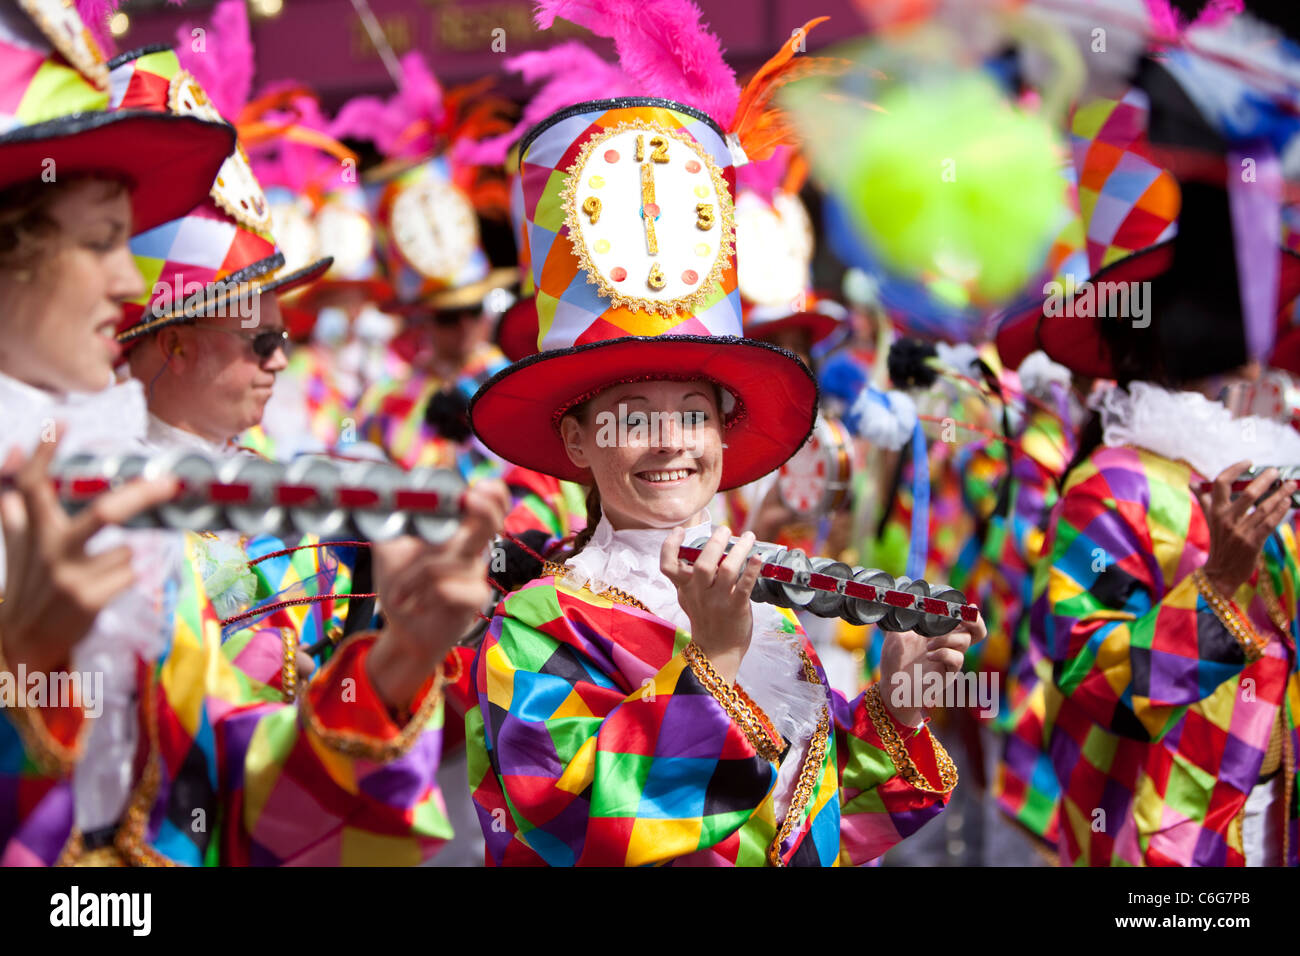 Samba school musicians in costumes, at The Notting Hill Carnival 2011, London, England, UK. - Stock Image